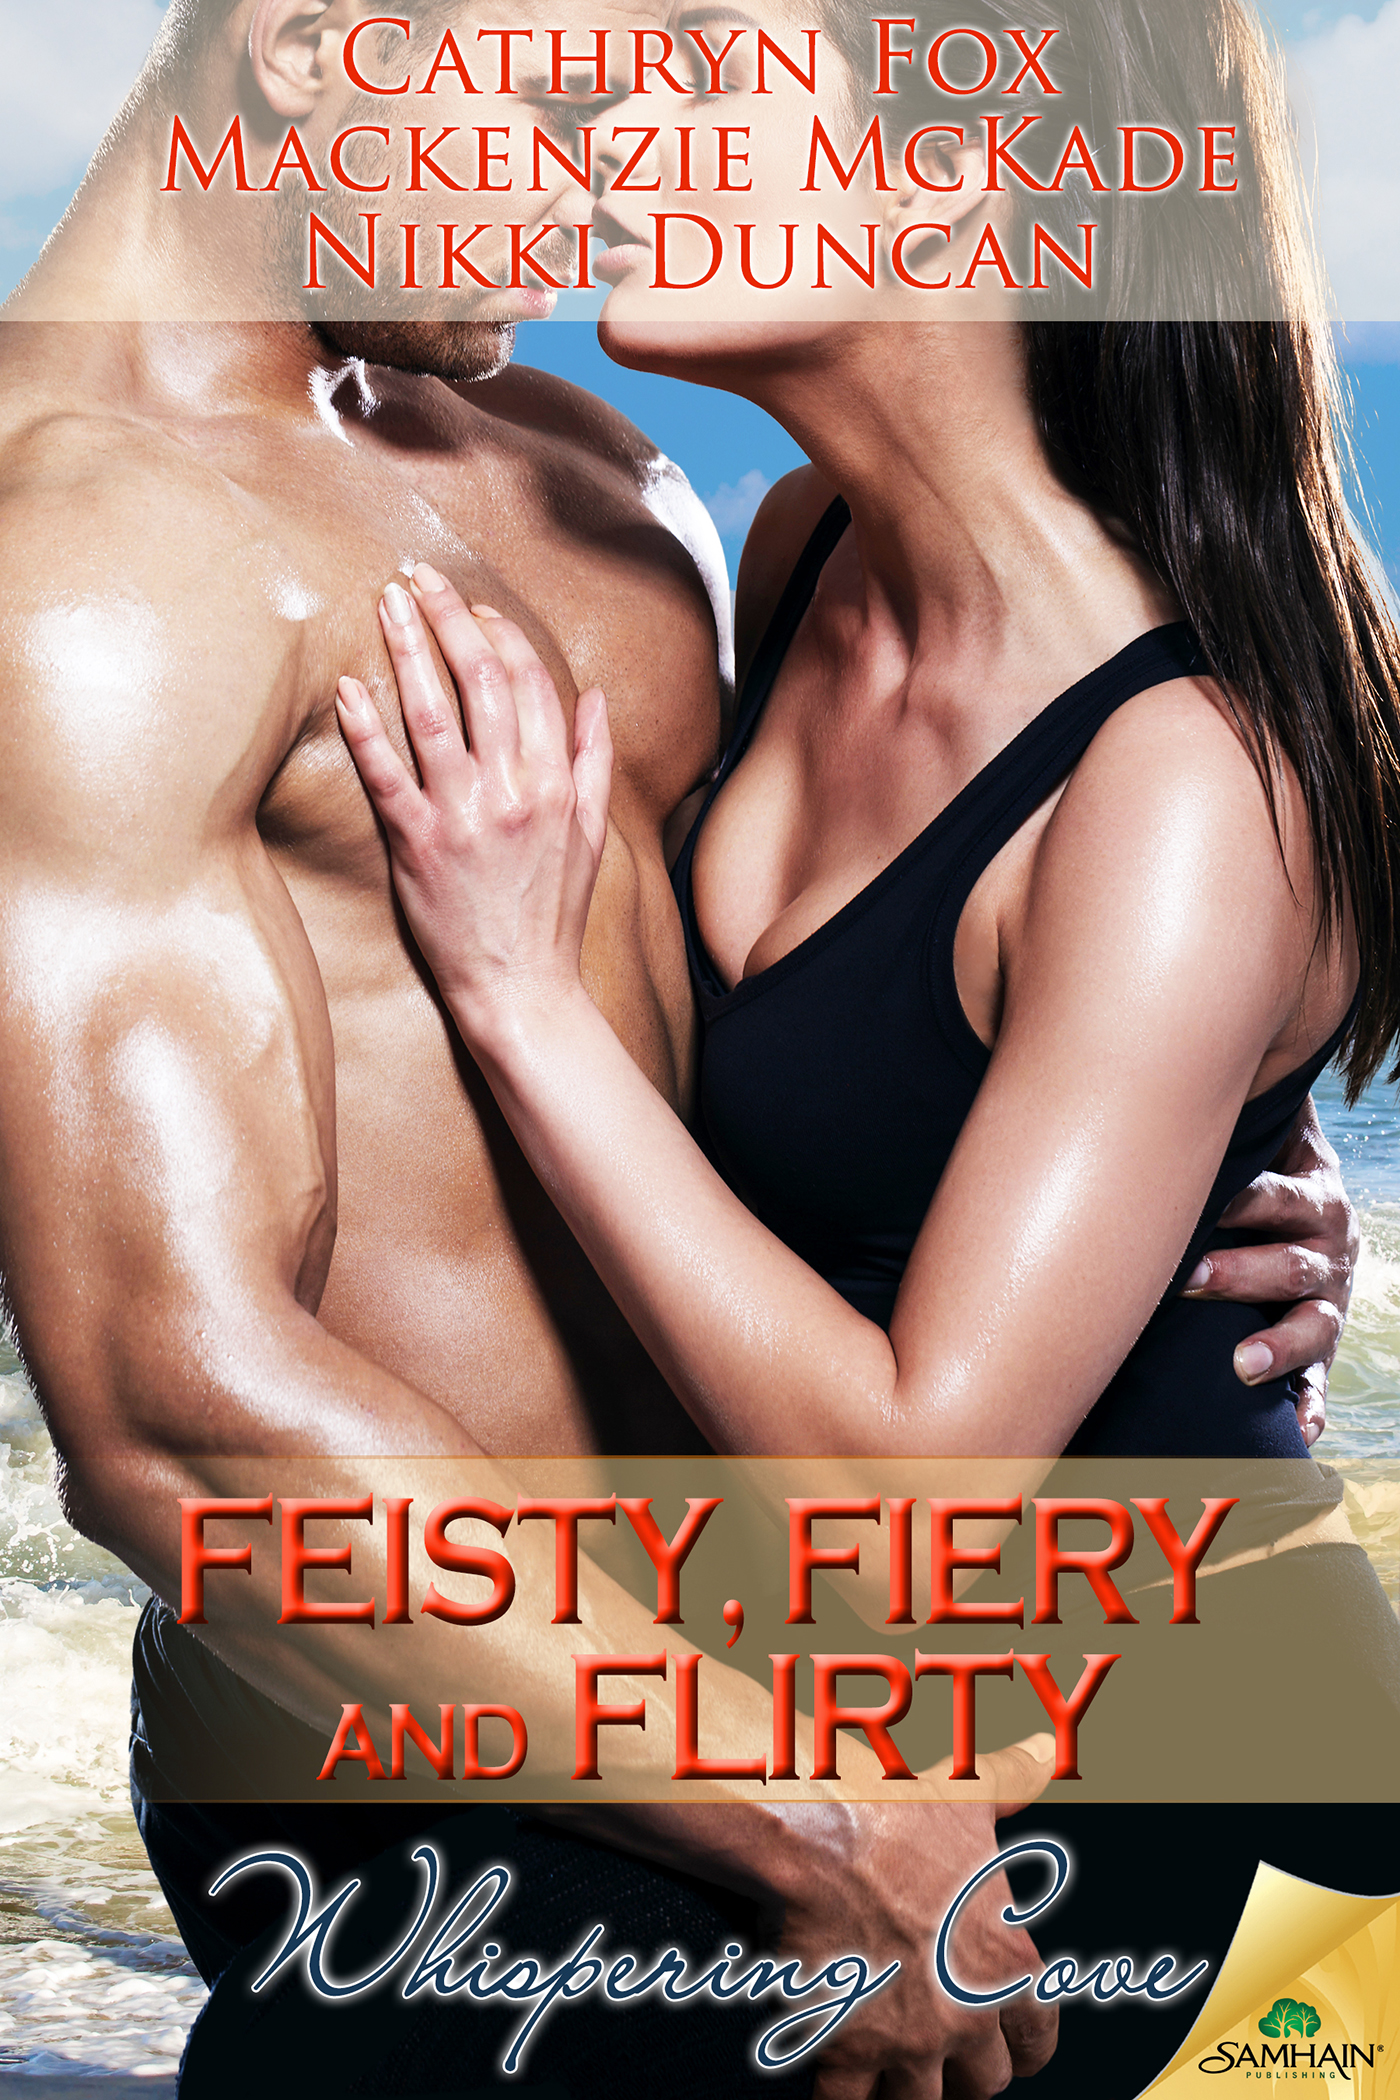 Feisty, Fiery and Flirty